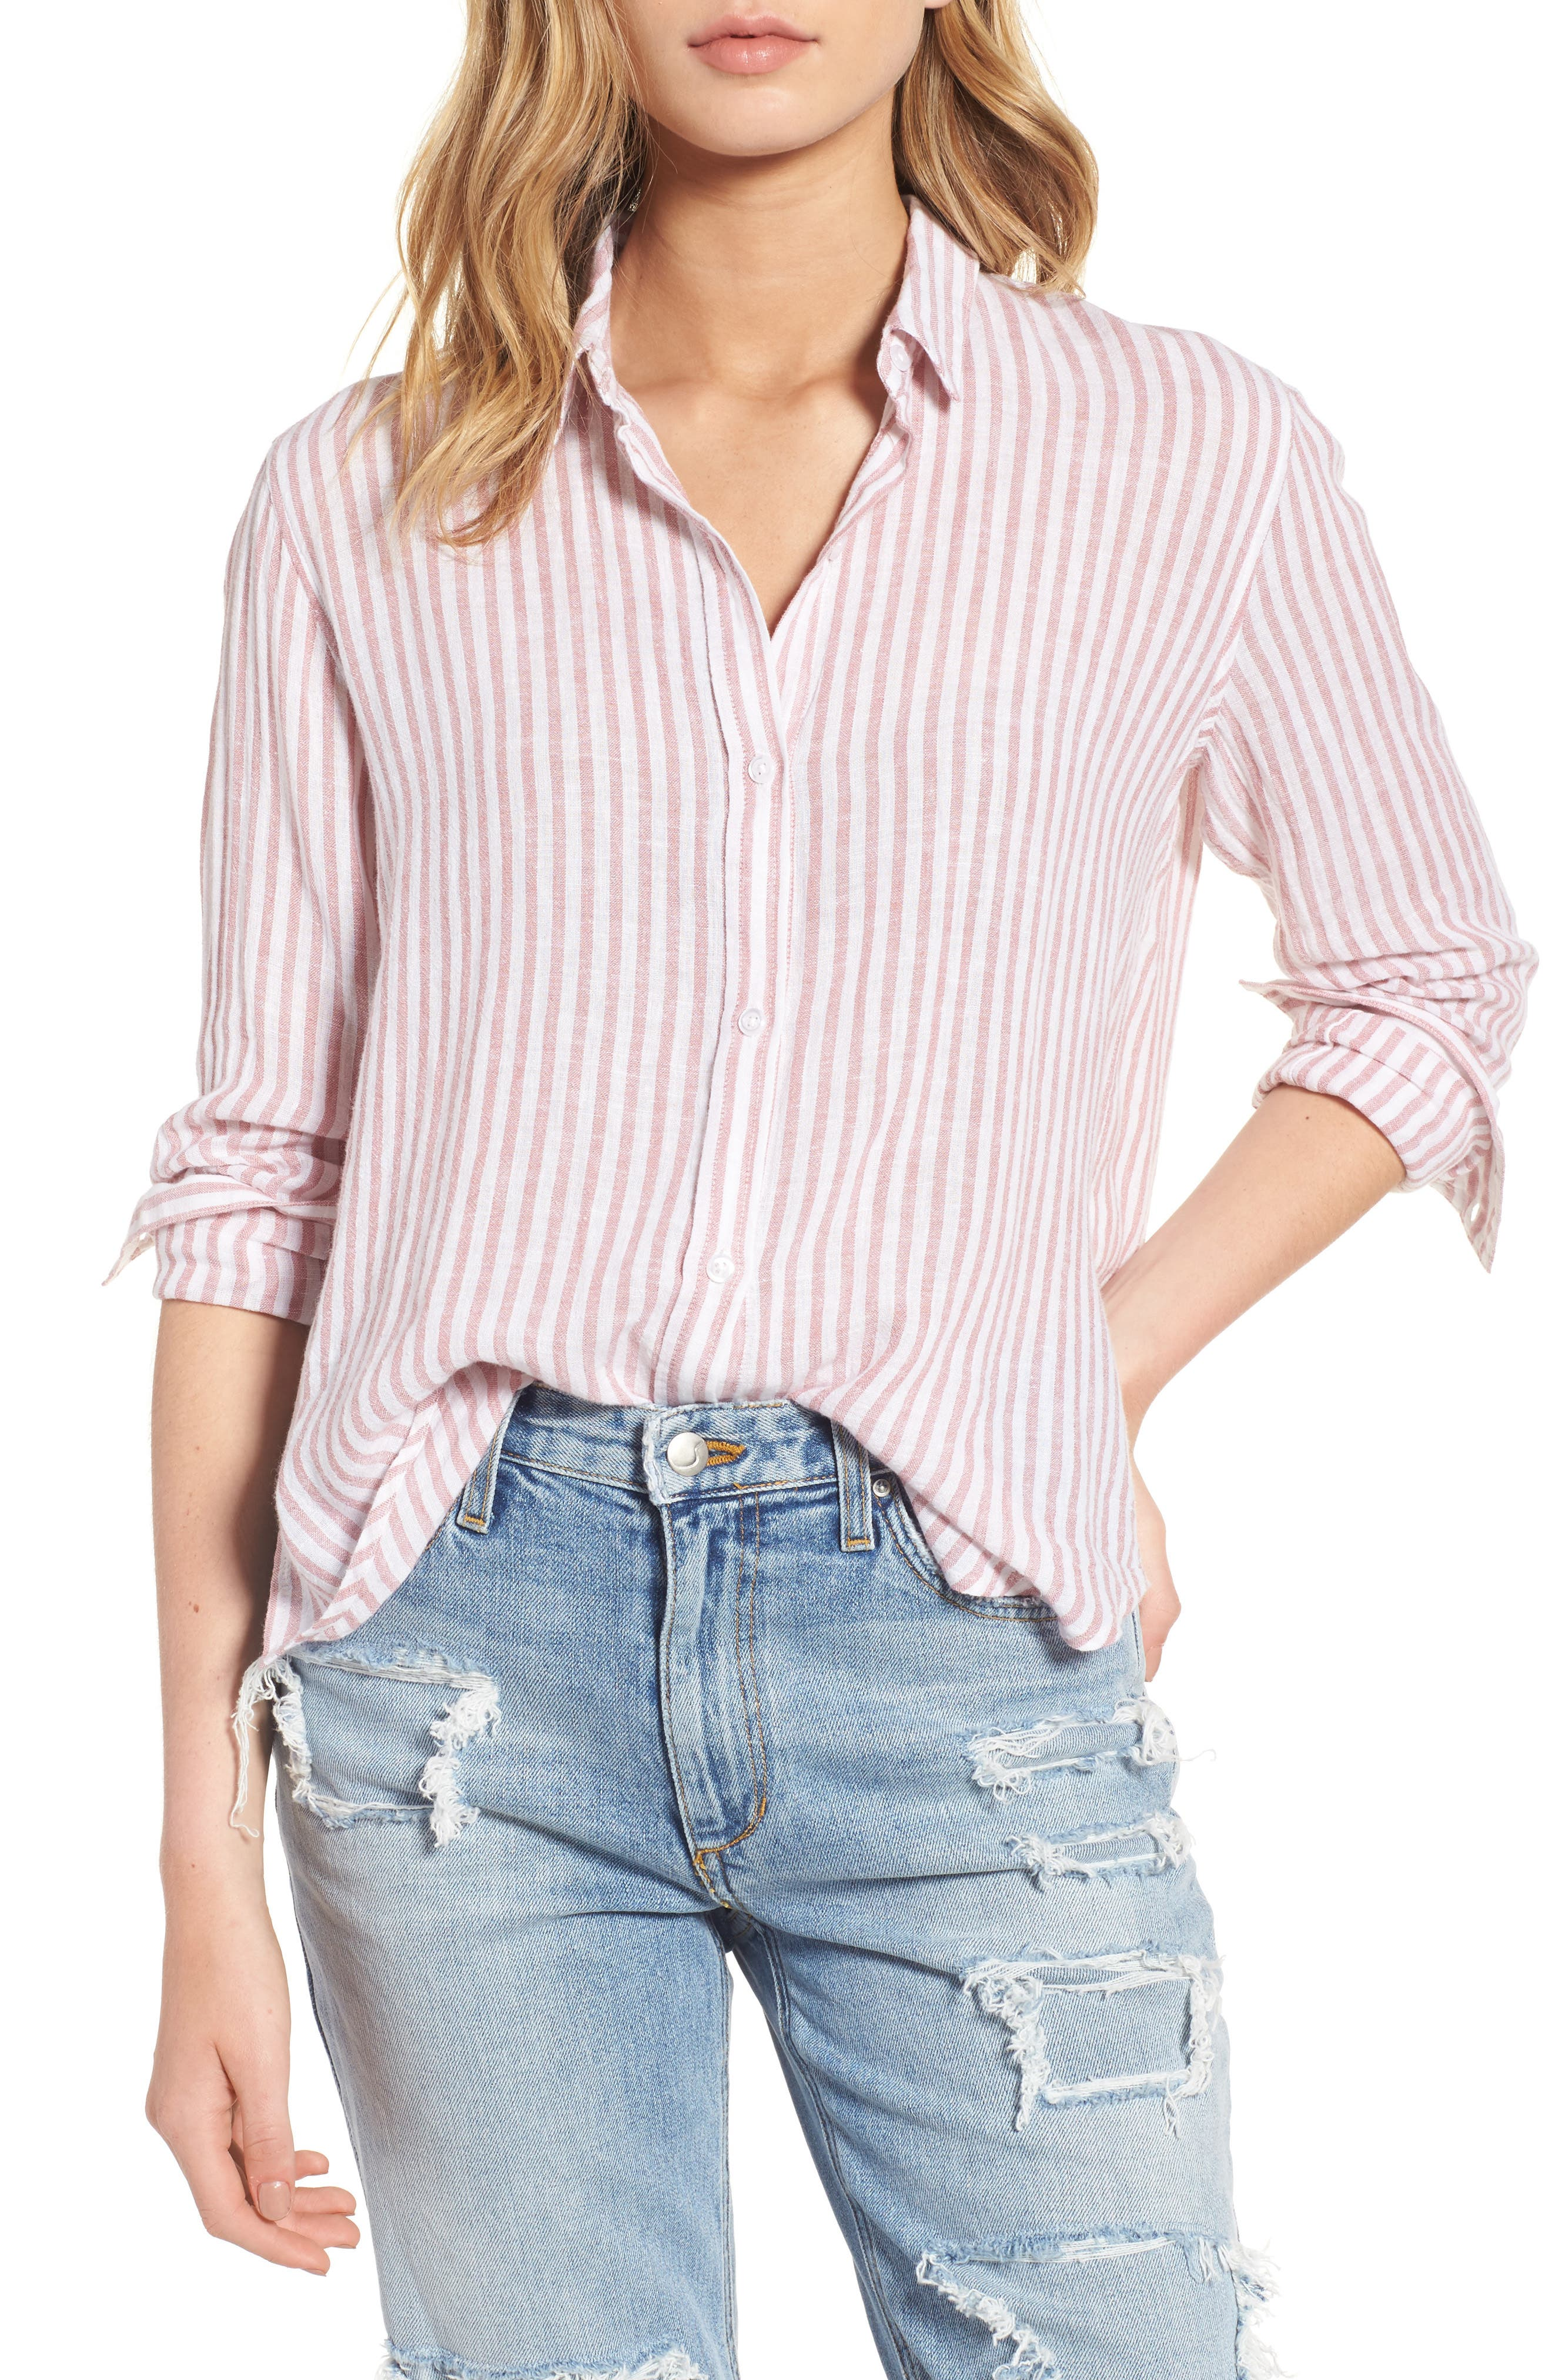 Sydney Stripe Linen Blend Shirt,                             Main thumbnail 1, color,                             Florence Stripe